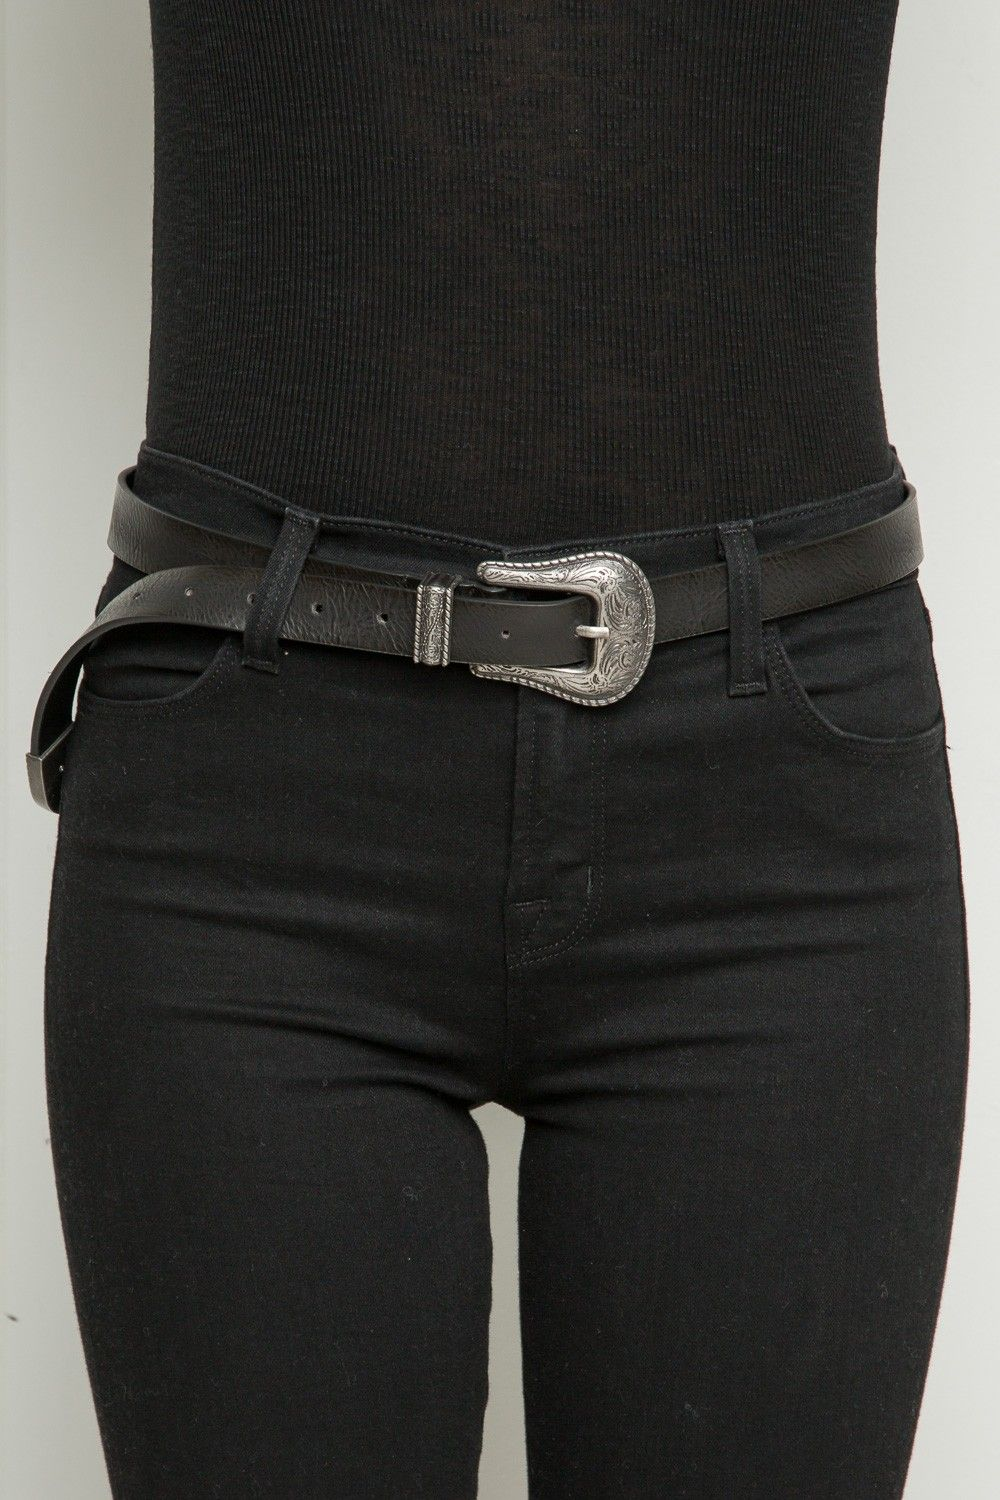 Brandy Melville Etched Silver Buckle Belt Accessories